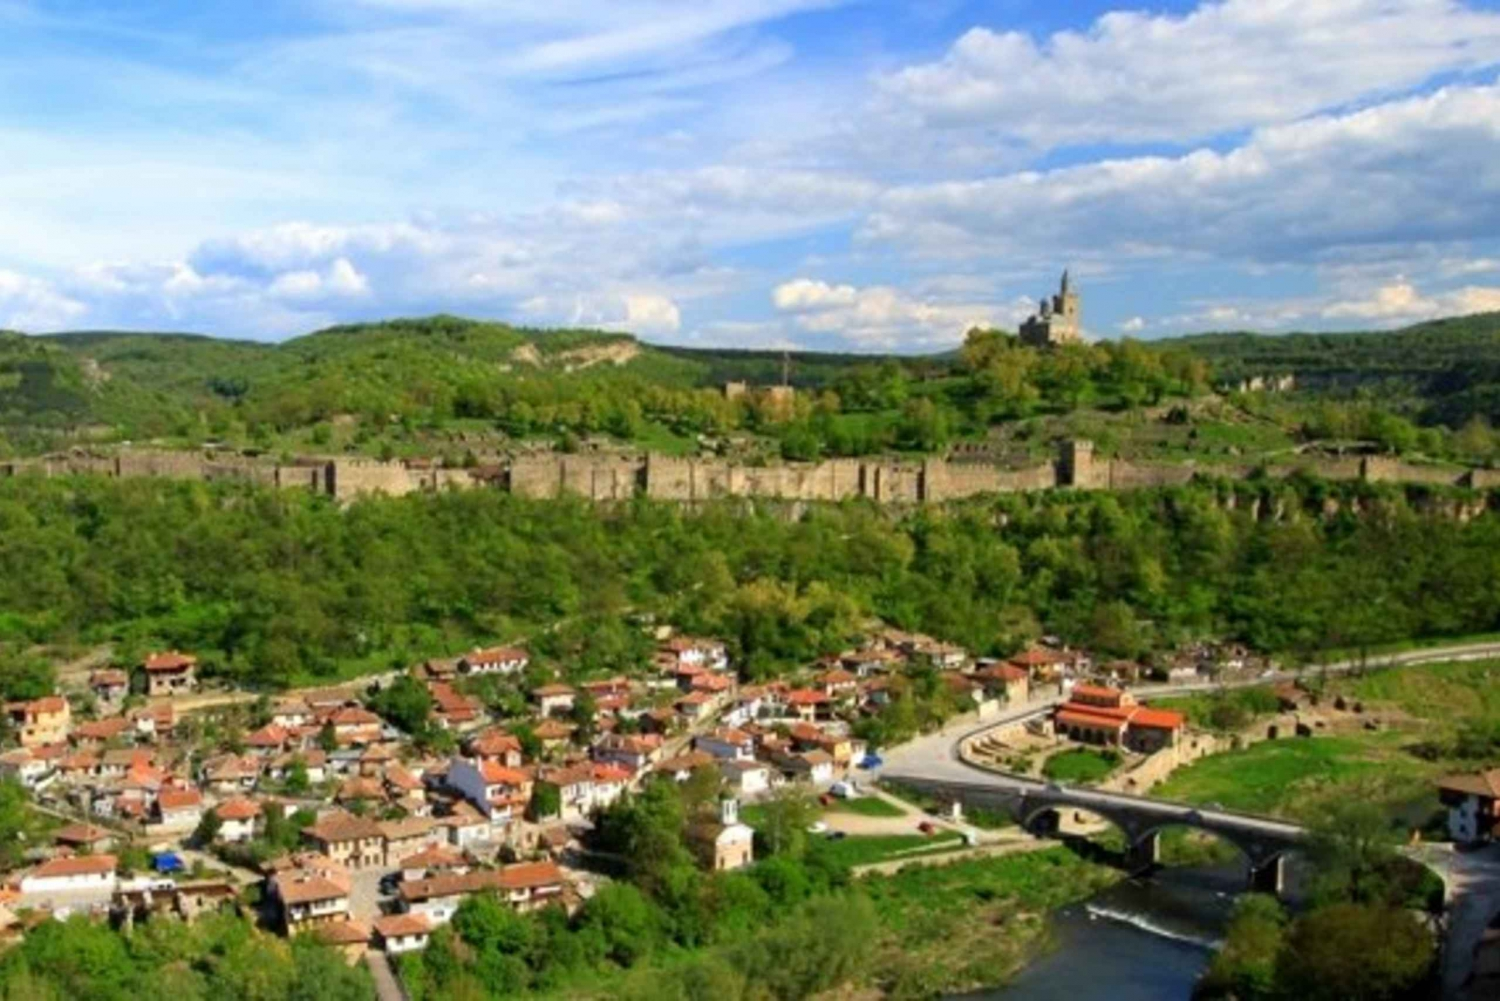 From Sofia: Veliko Tarnovo and Arbanasi